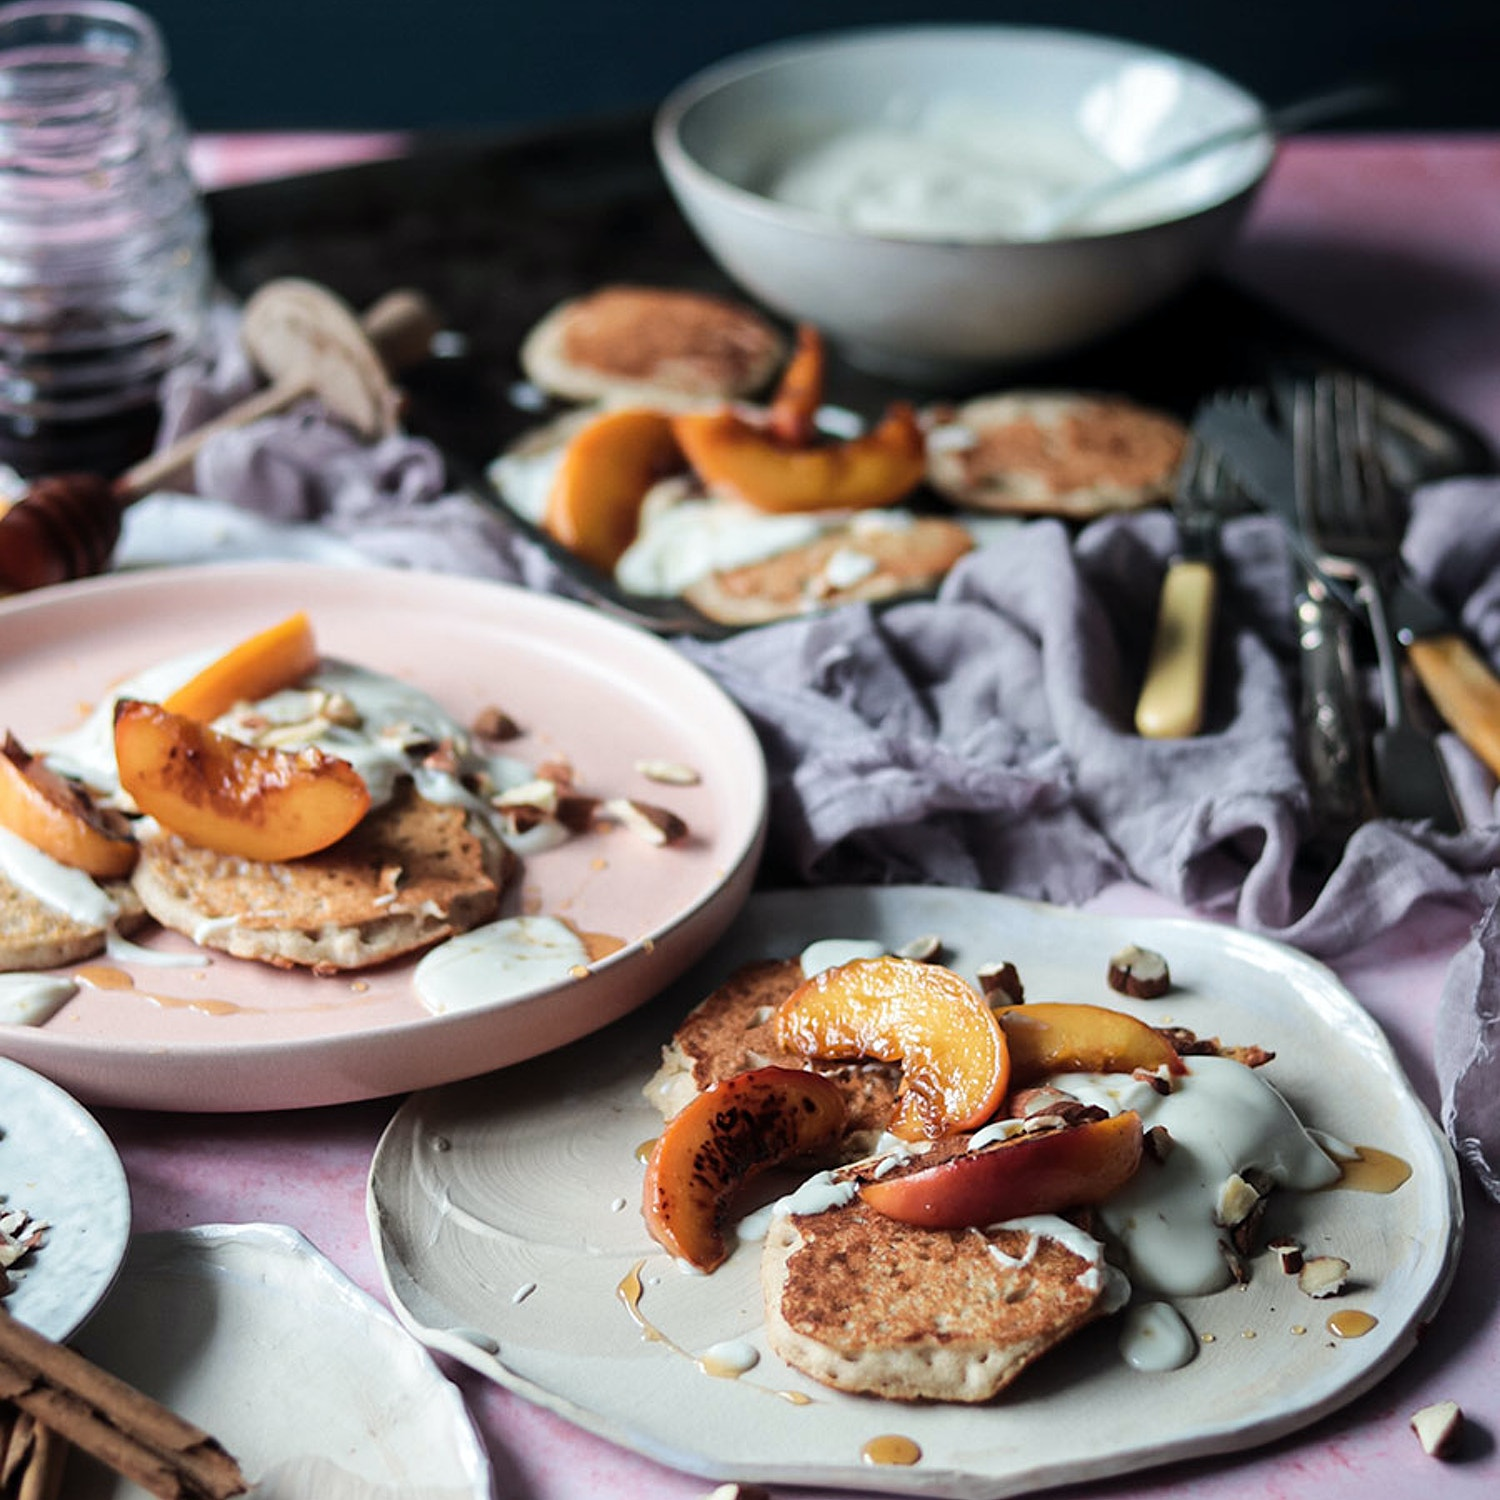 GF Almond and Buckwheat Pancakes with Caramelised Maple Peaches